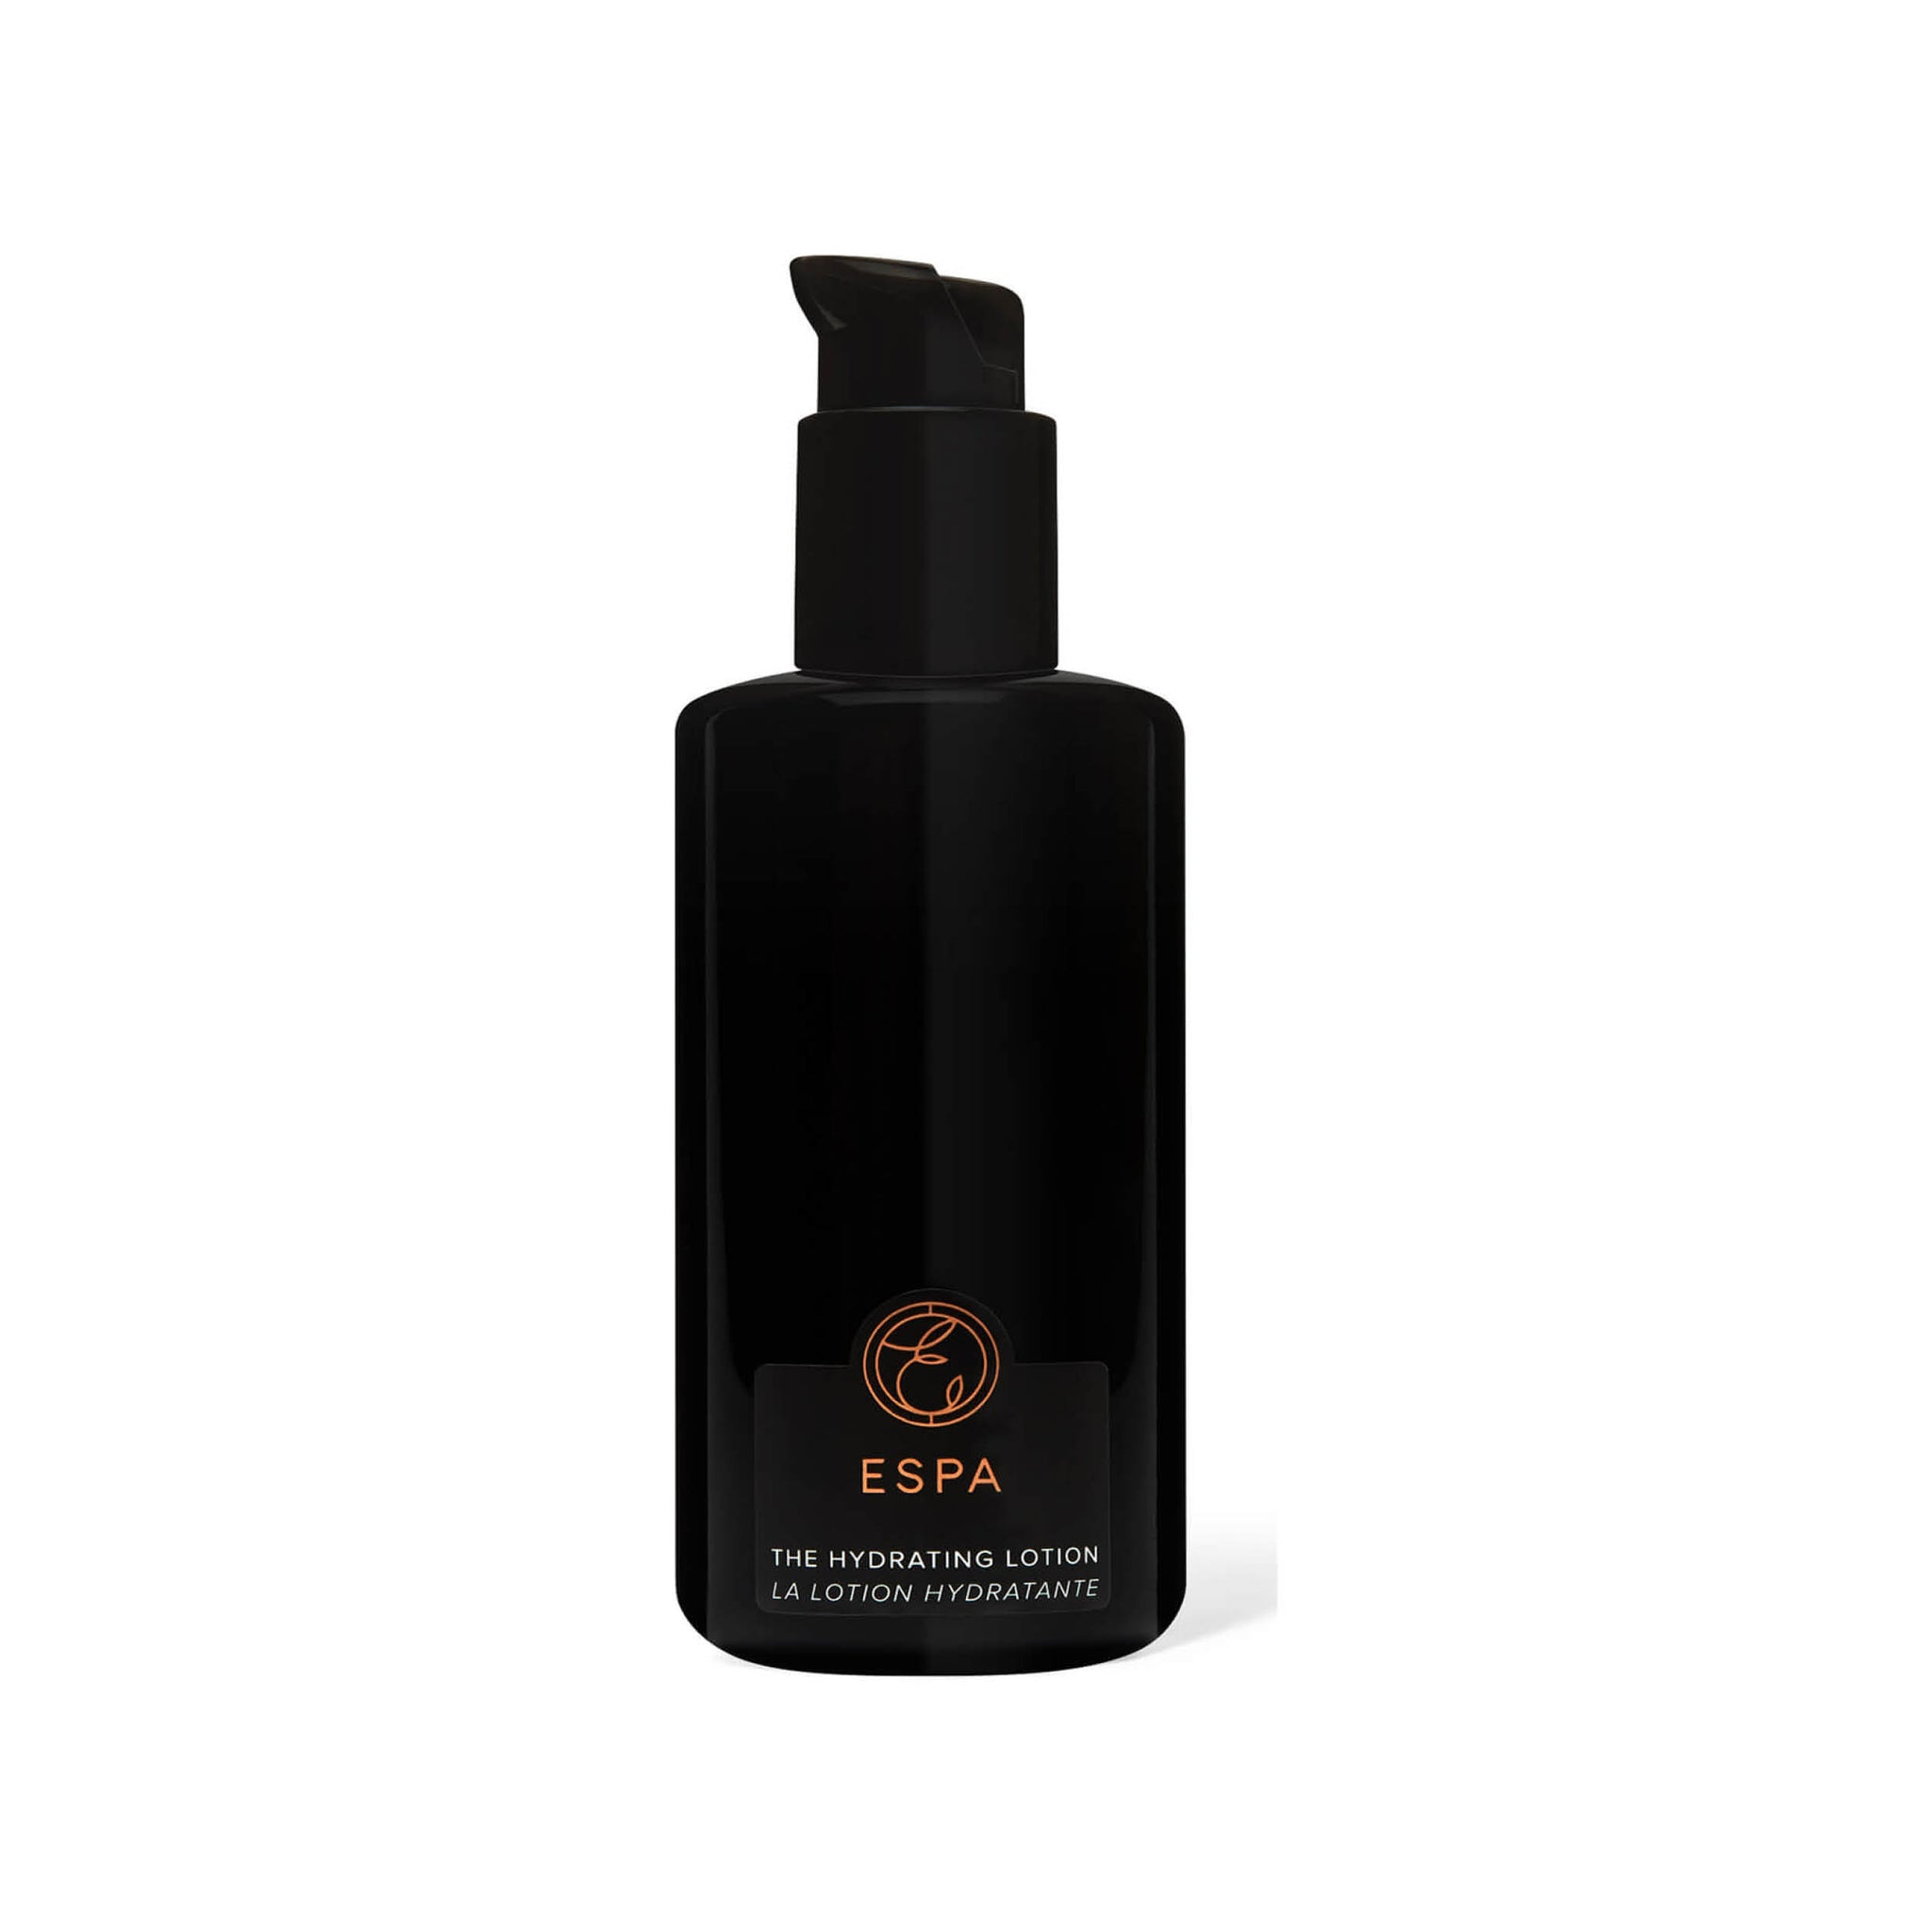 ESPA Modern Alchemy The Hydrating Lotion